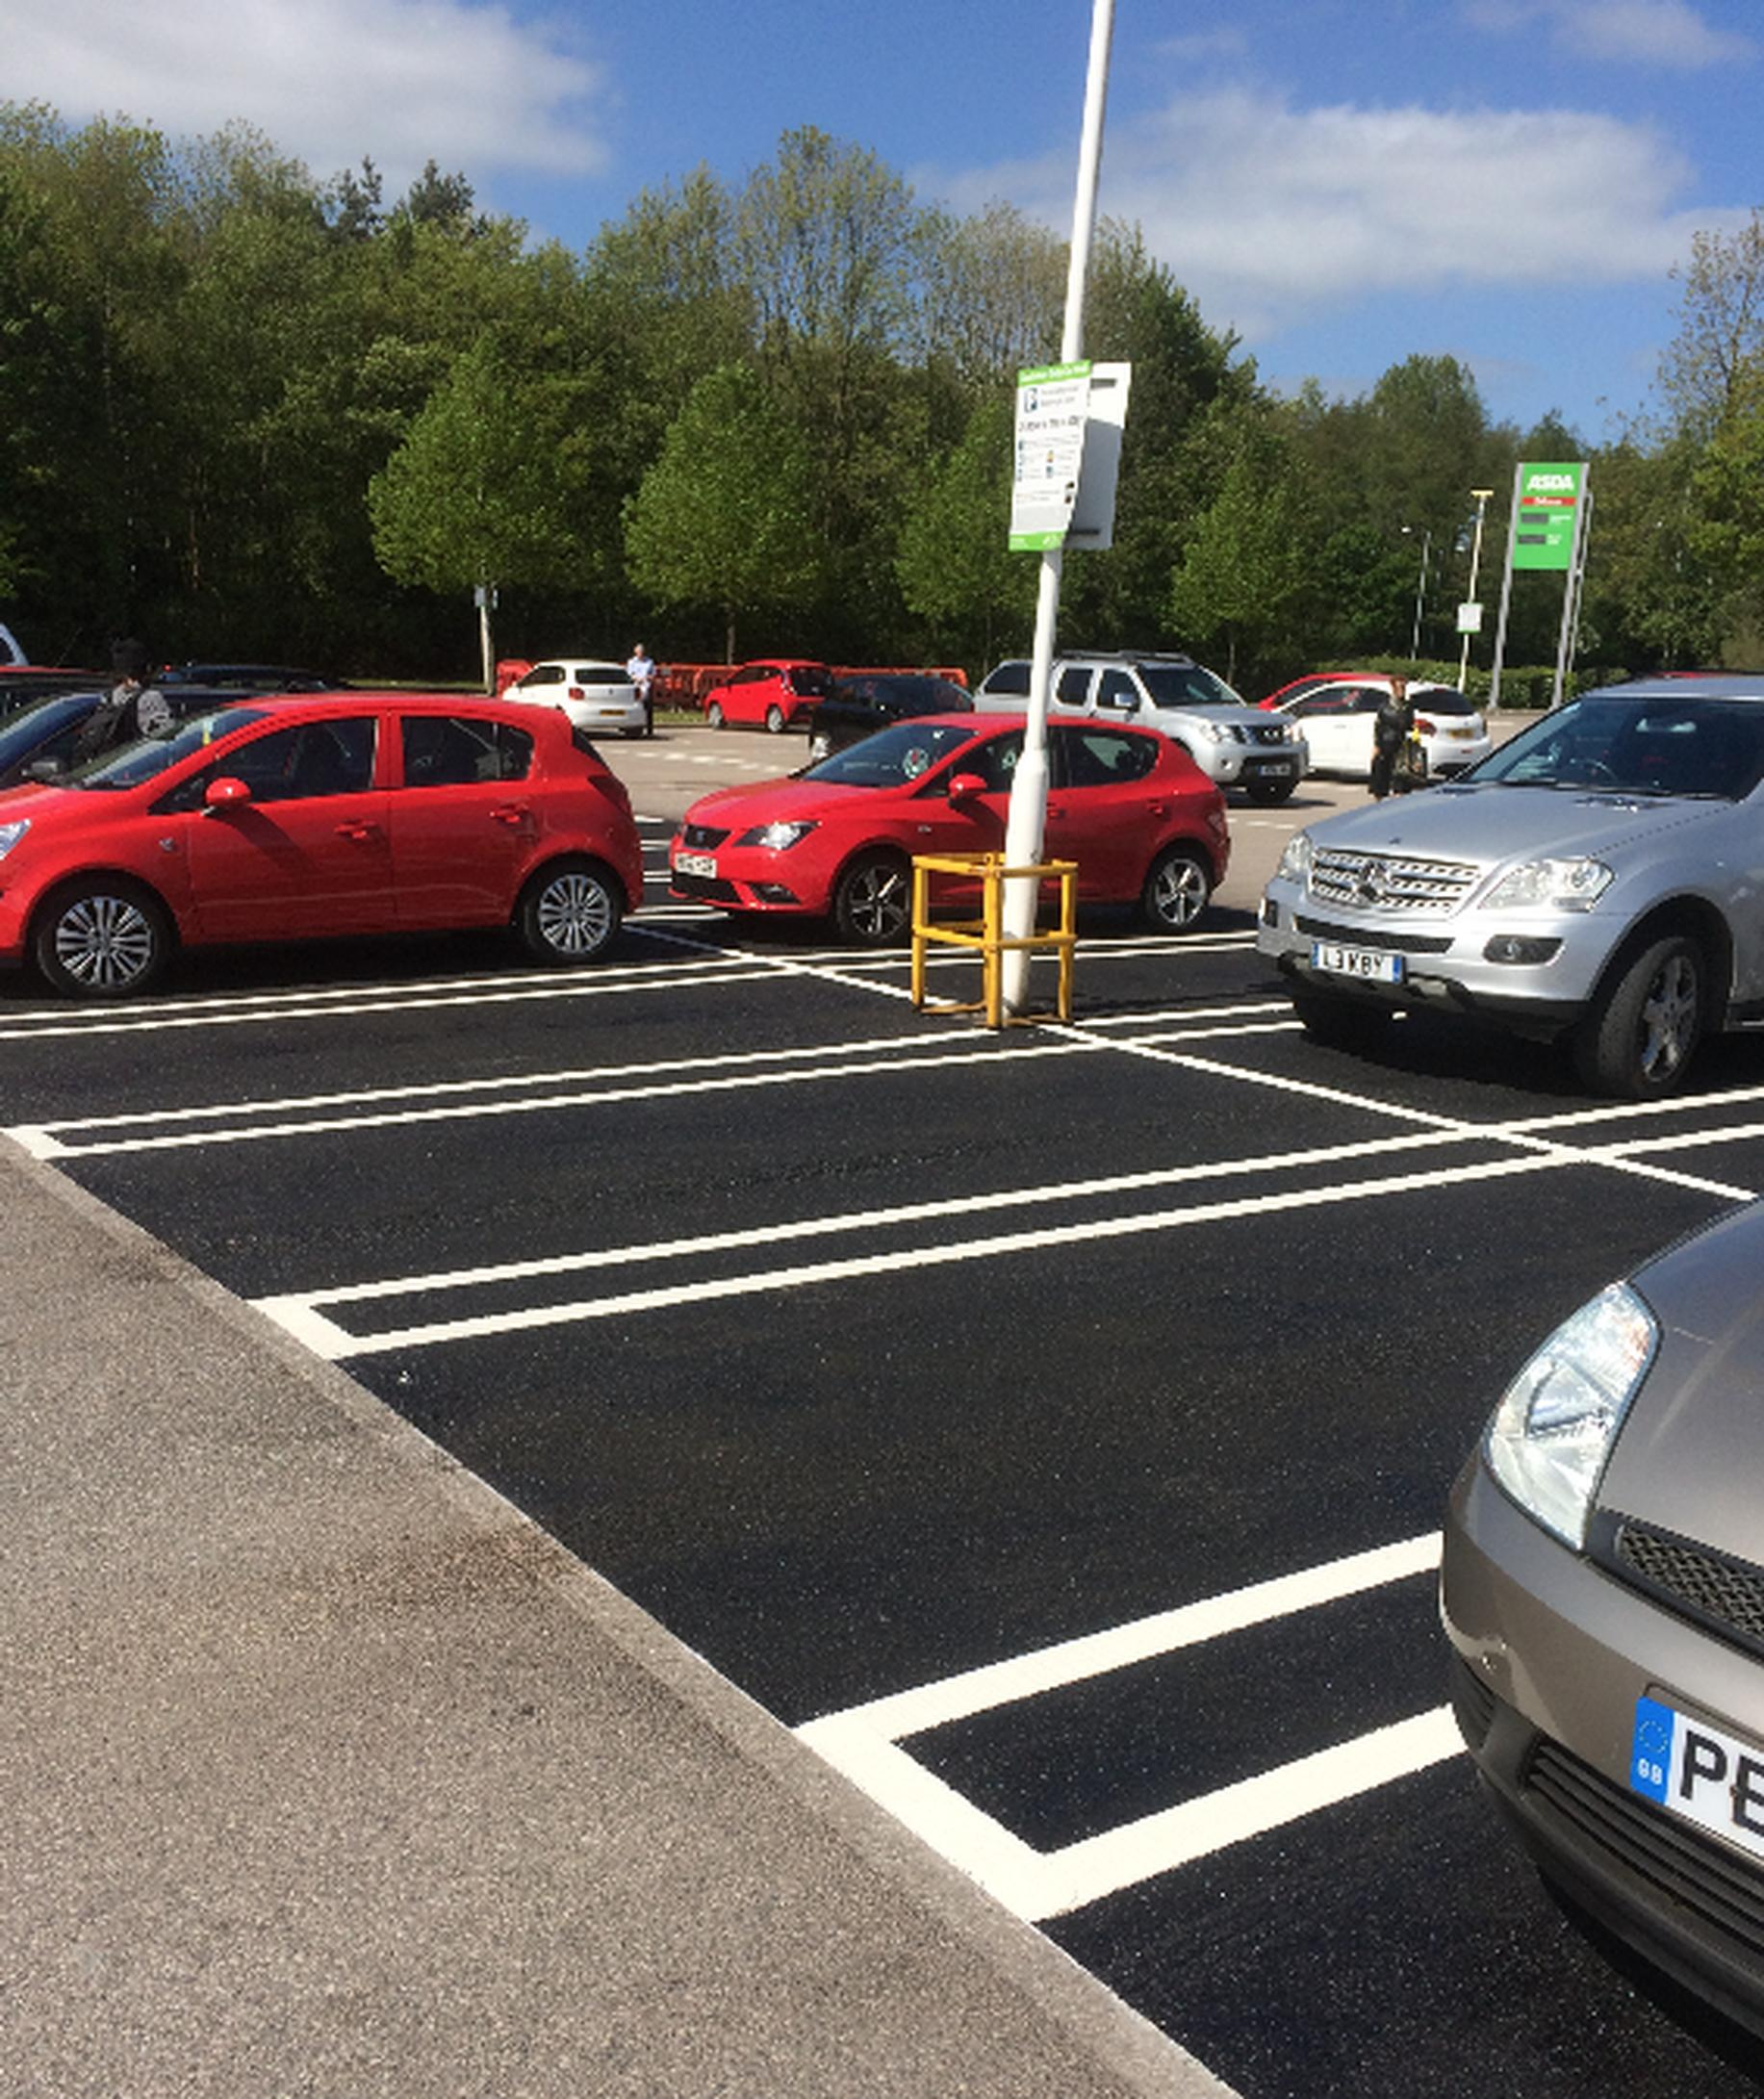 An upgraded supermarket car park